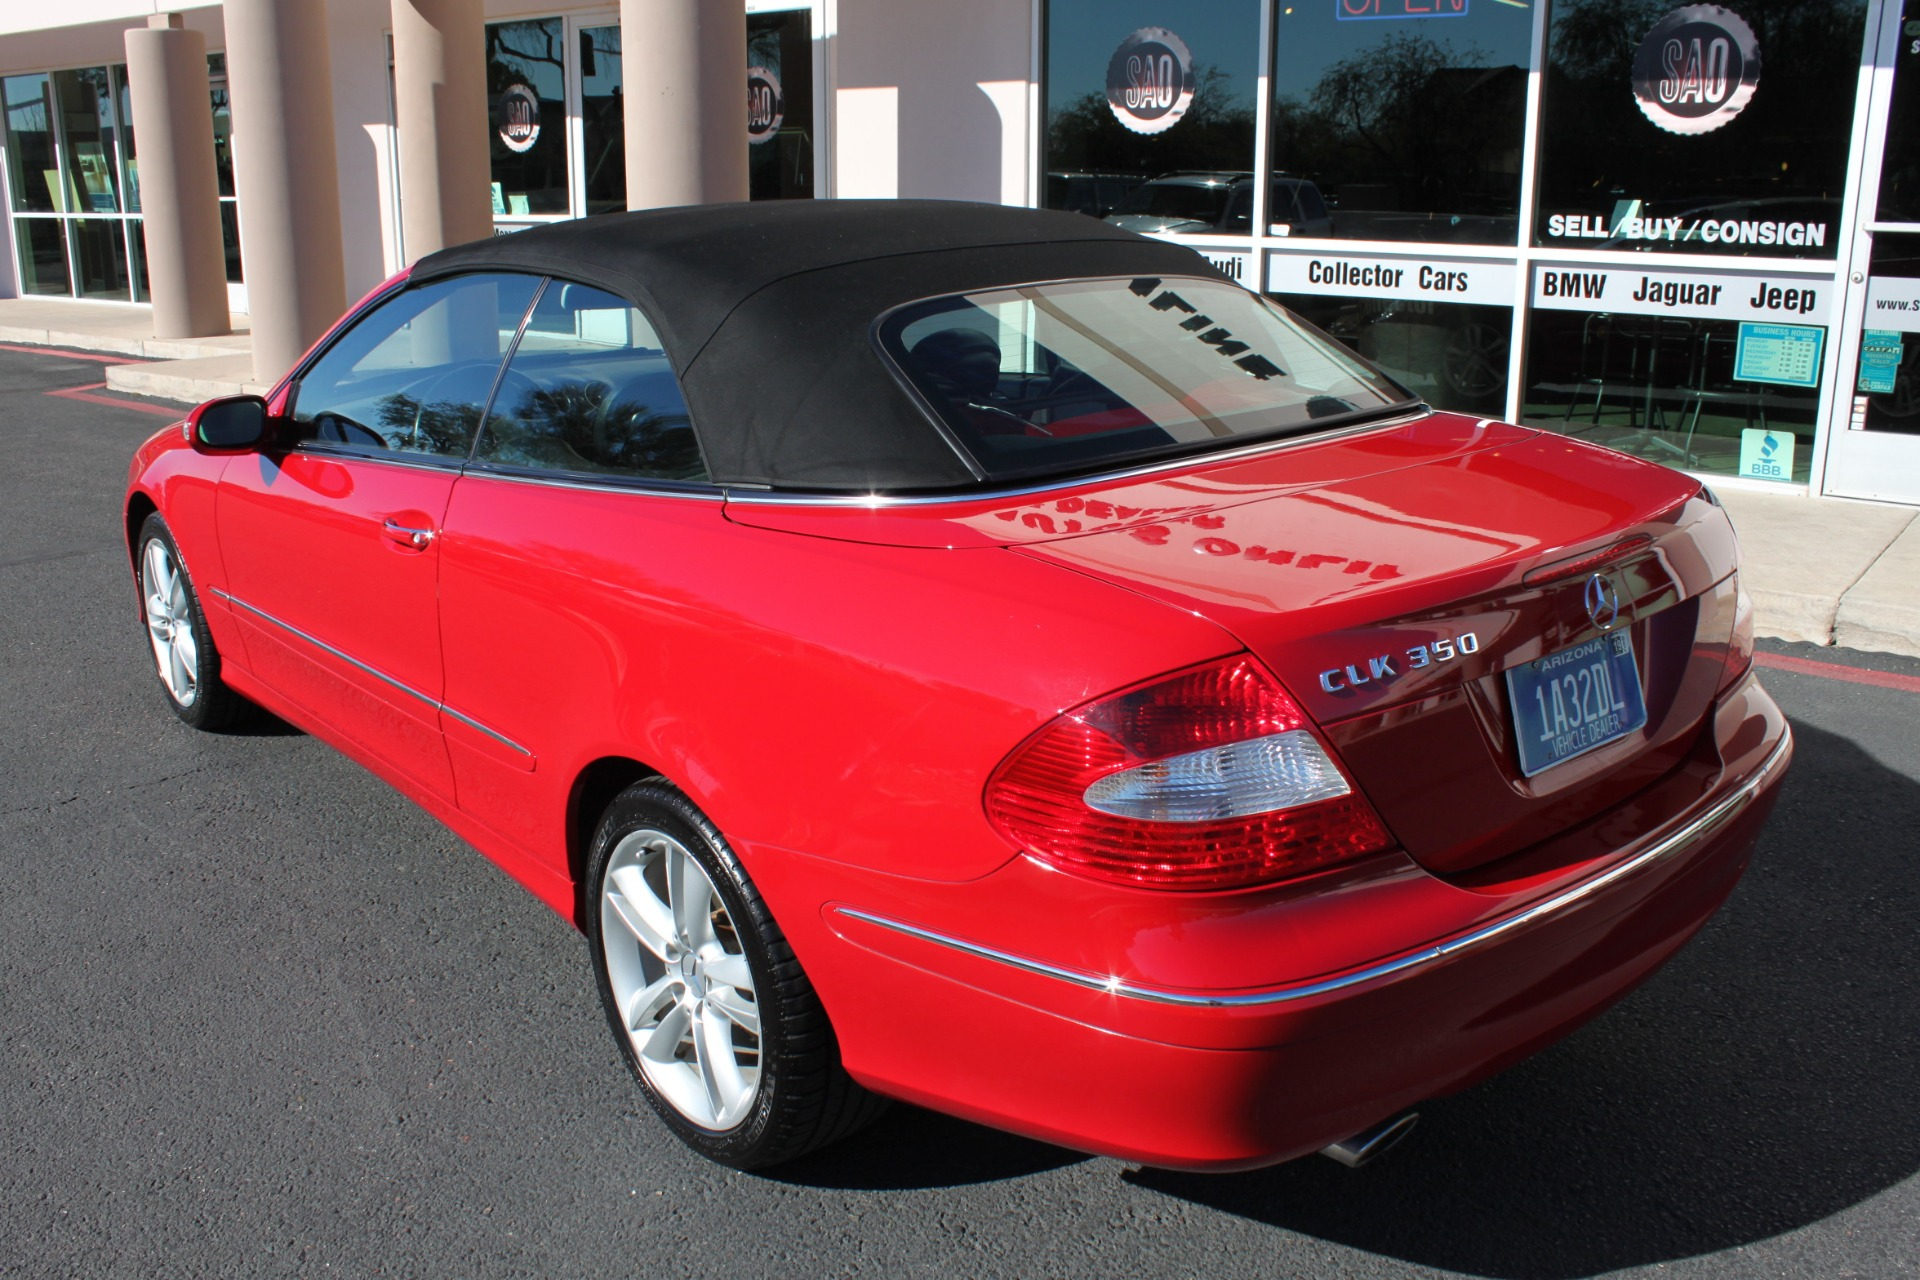 Used-2006-Mercedes-Benz-CLK-Class-CLK350-Cabriolet-35L-Chevelle